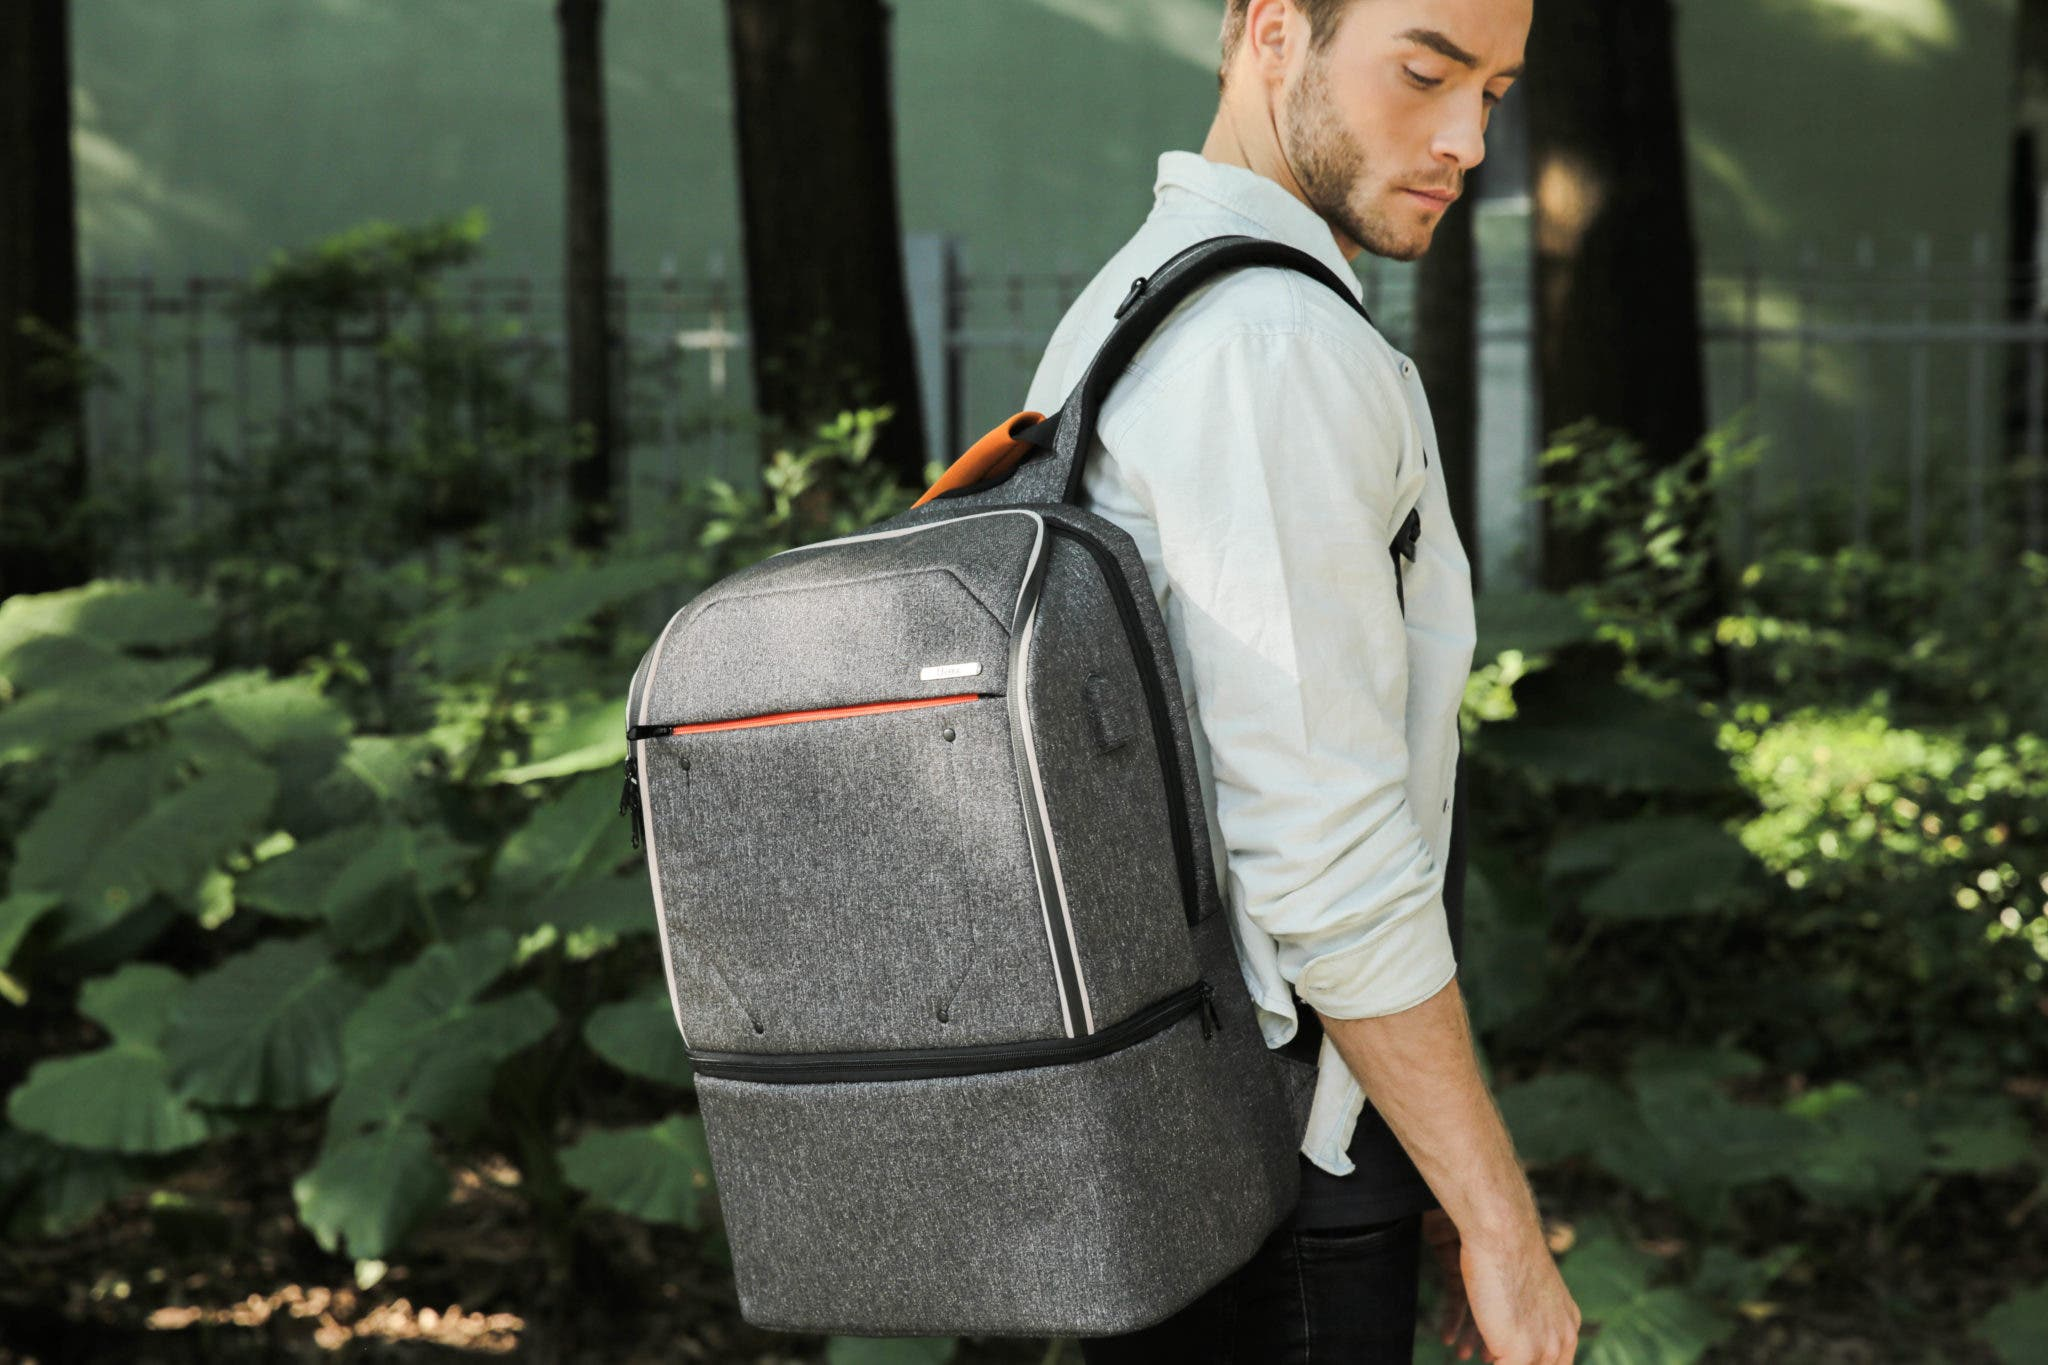 Udee Aims To Create The World's Most Versatile Backpack